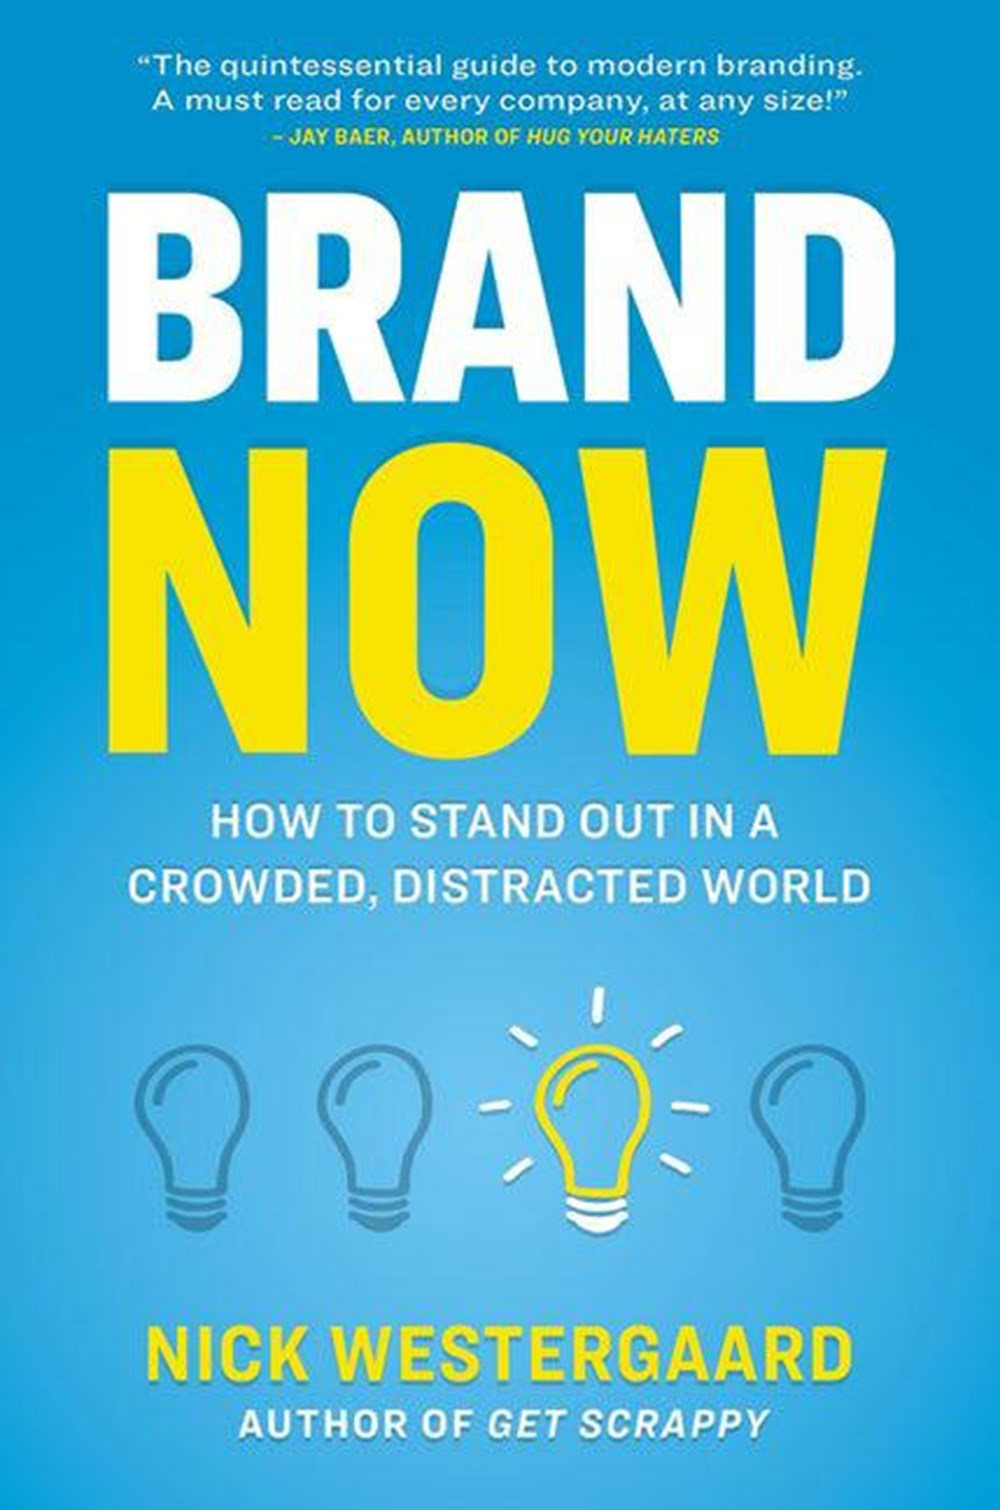 Brand Now How to Stand Out in a Crowded, Distracted World